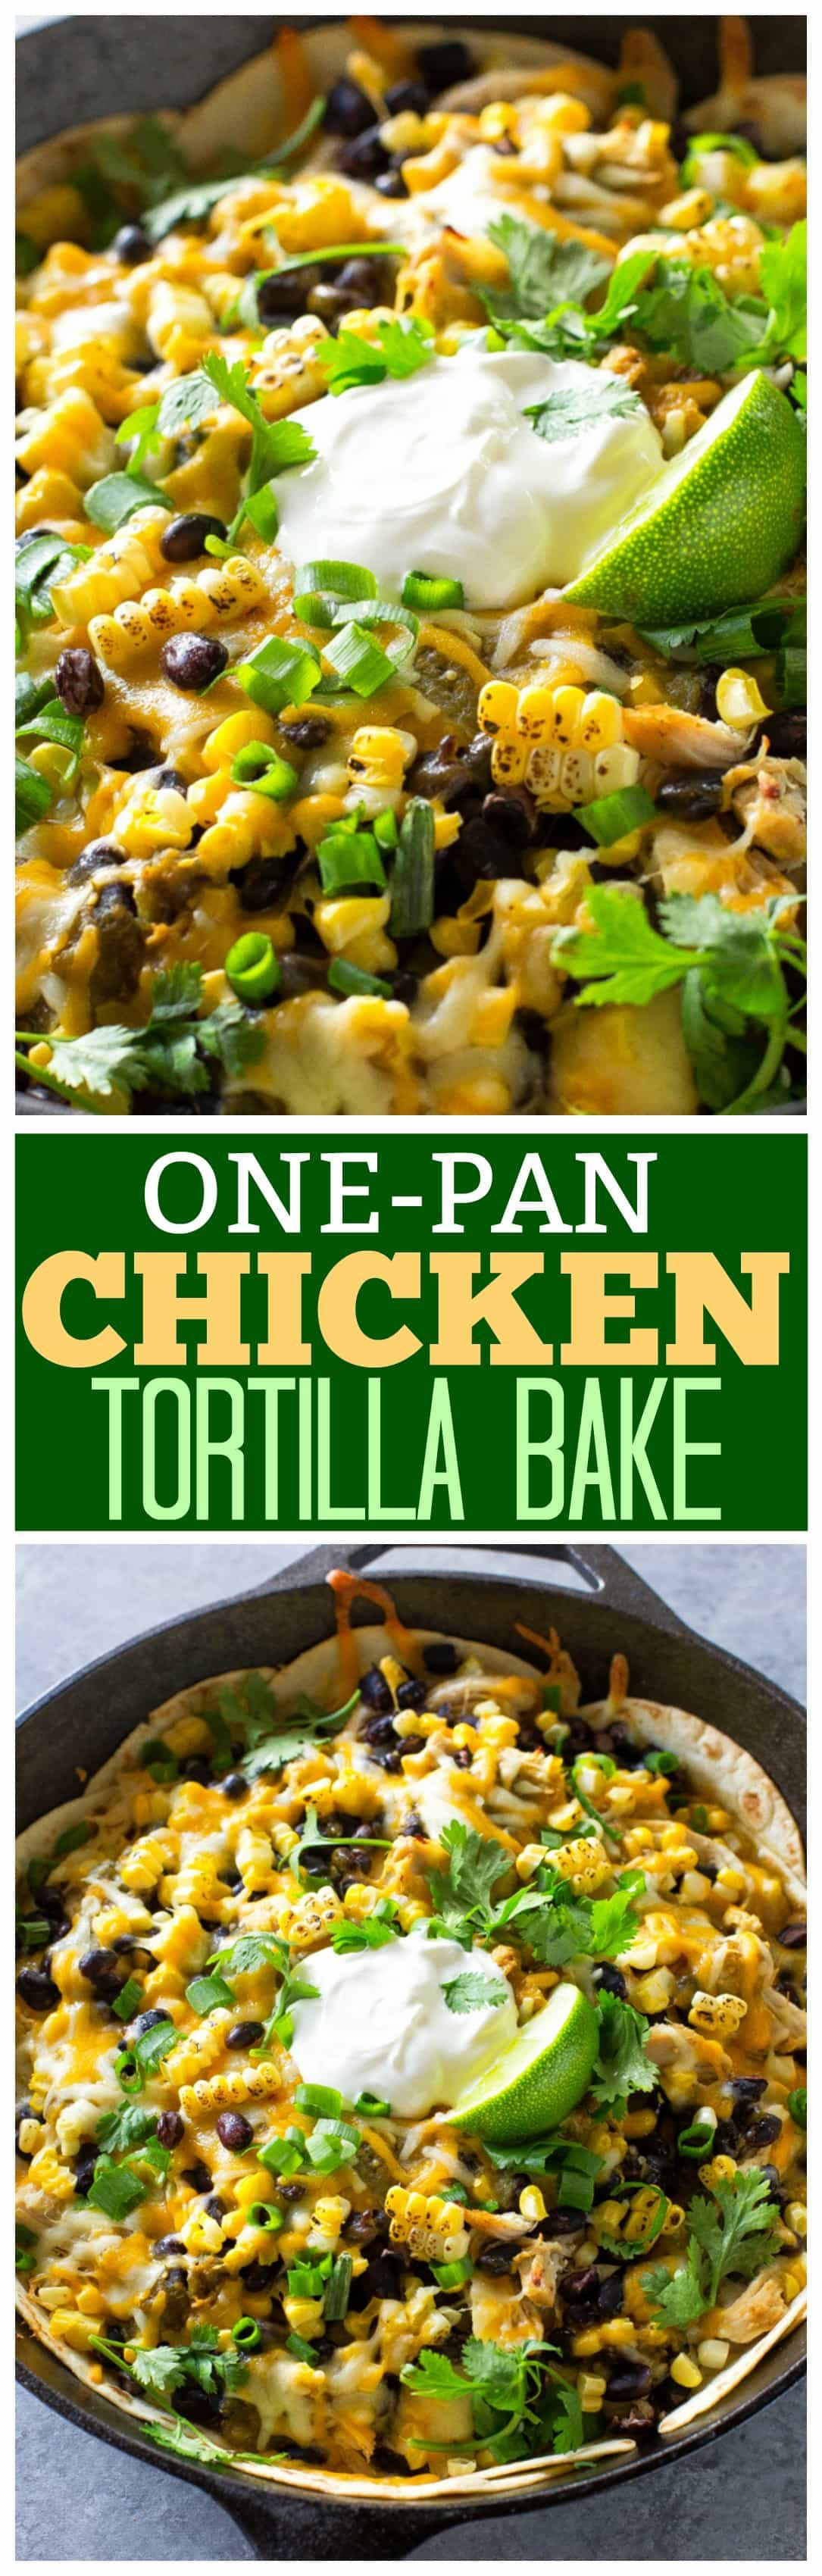 This OnePan Chicken Tortilla Bake is a spicy Mexican